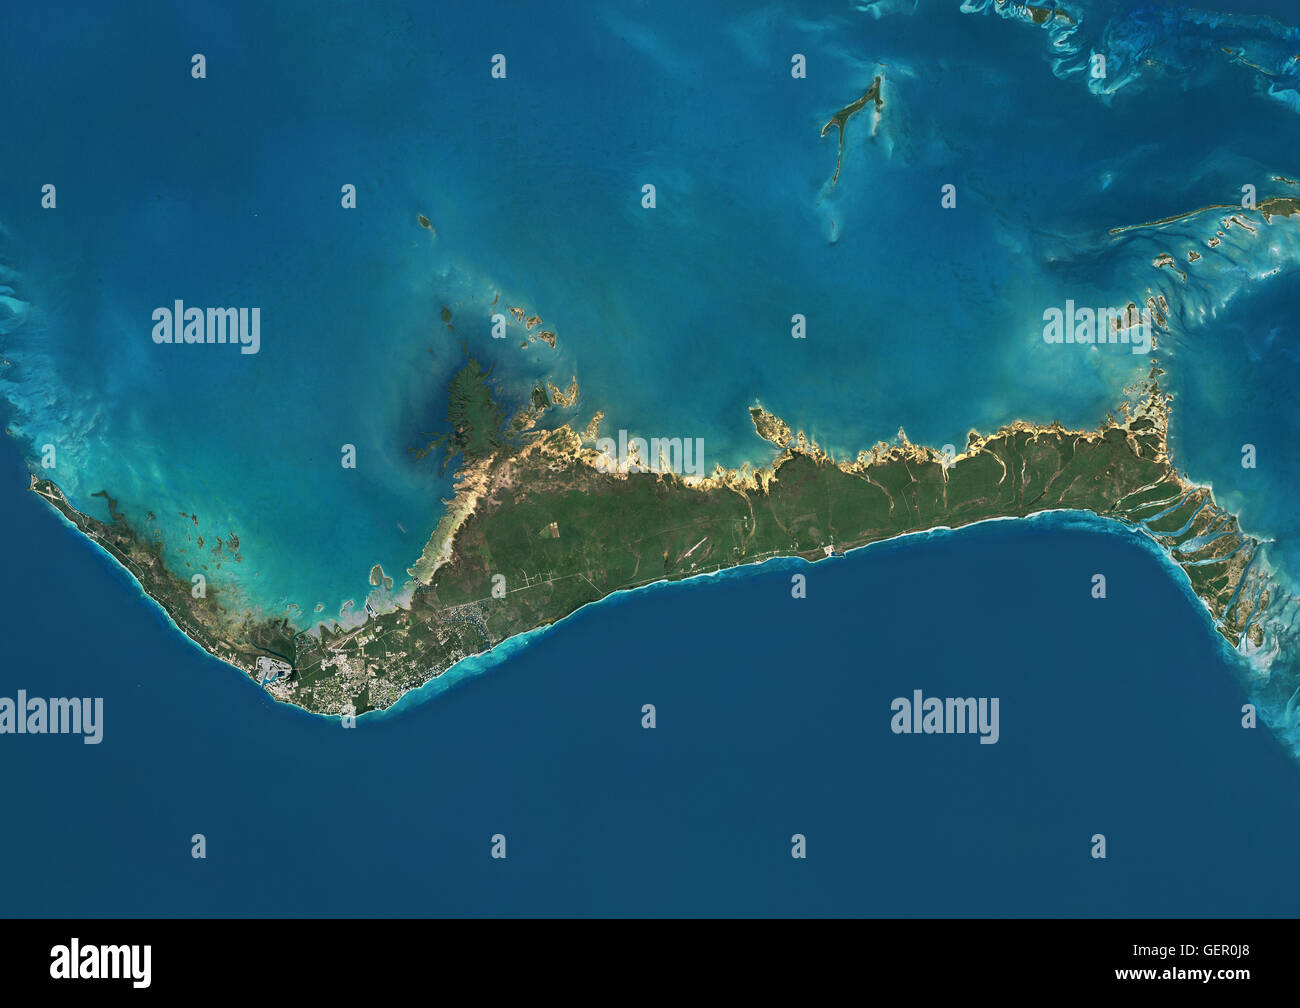 Satellite view of Grand Bahama, Bahamas. This image was ... on map fla bahamas, map of cancun, map of montego bay jamaica, map of barbados, map of delhi india, map of freeport texas, map of buenos aires argentina, map of rio de janeiro brazil, map of barcelona spain, grand lucayan bahamas, map of curacao, map of freeport maine, map of madrid spain, nassau bahamas, map of nassau and freeport, map long island bahamas, map of managua nicaragua, map of san salvador el salvador, map of fort de france martinique, map of freeport trinidad,